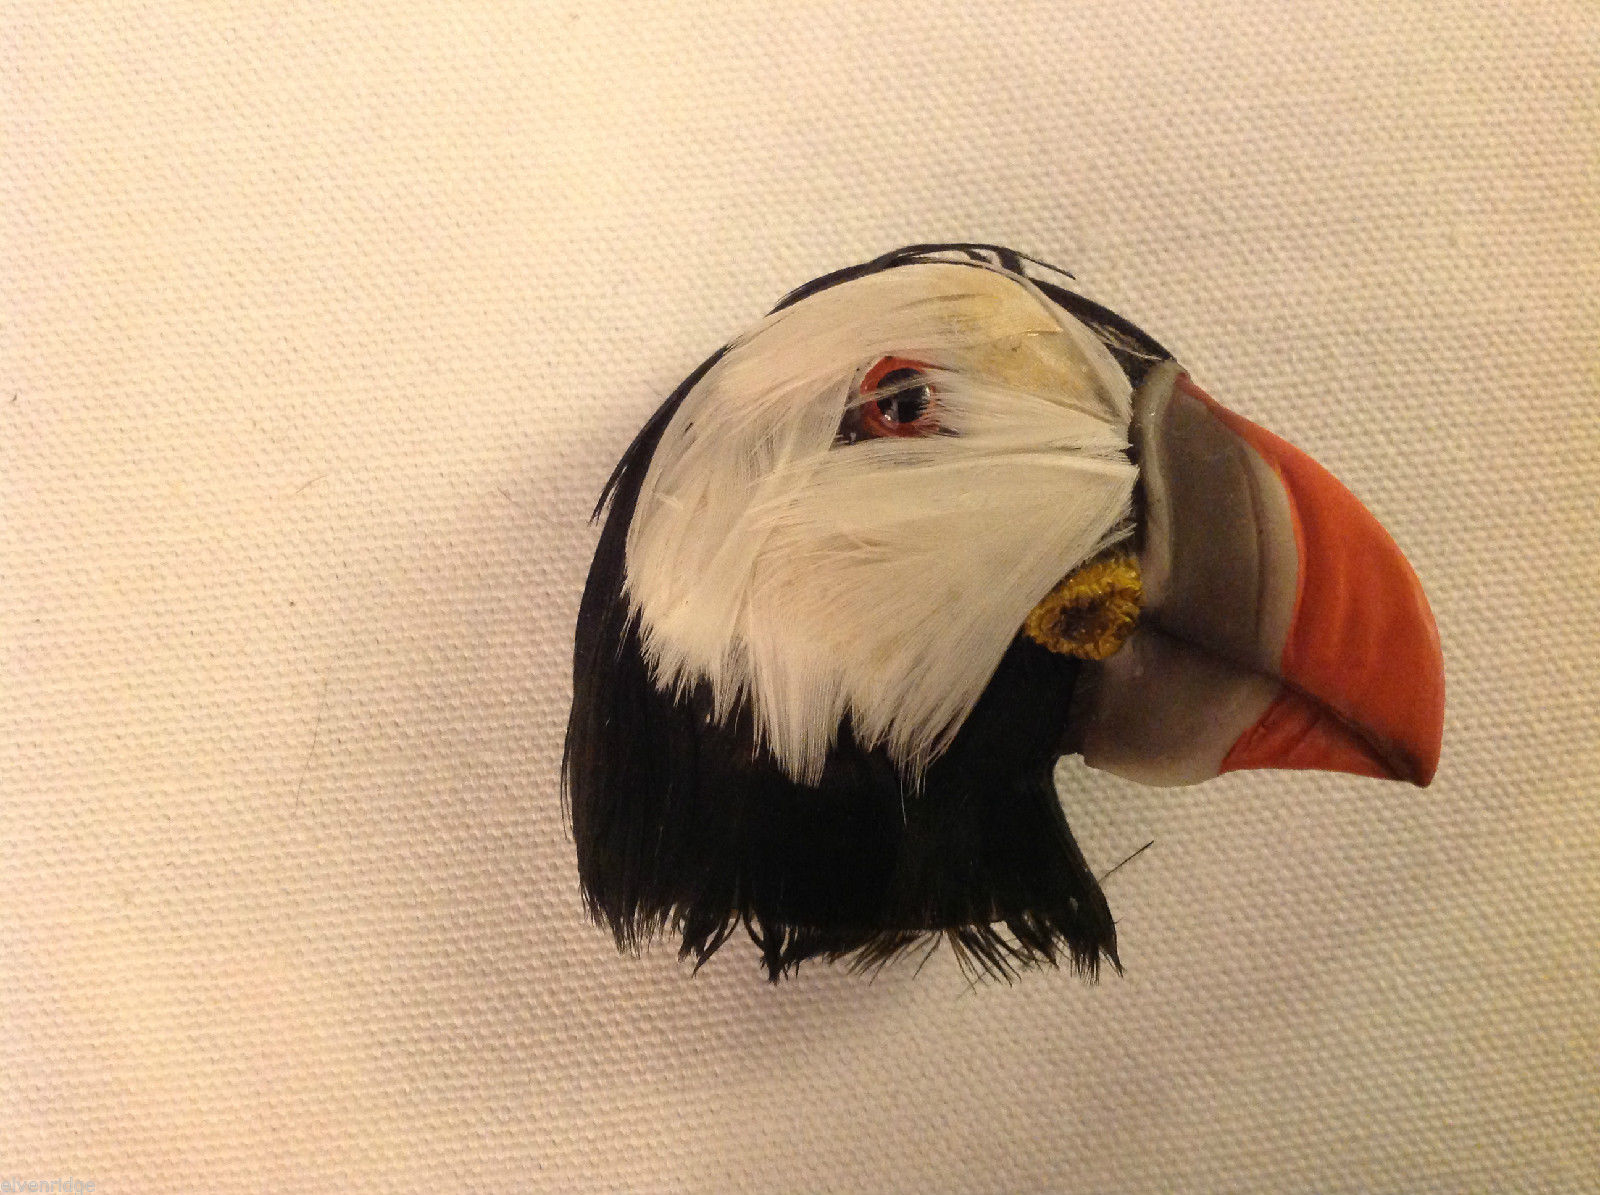 Puffin head with  real feathers refrigerator magnet in 3D